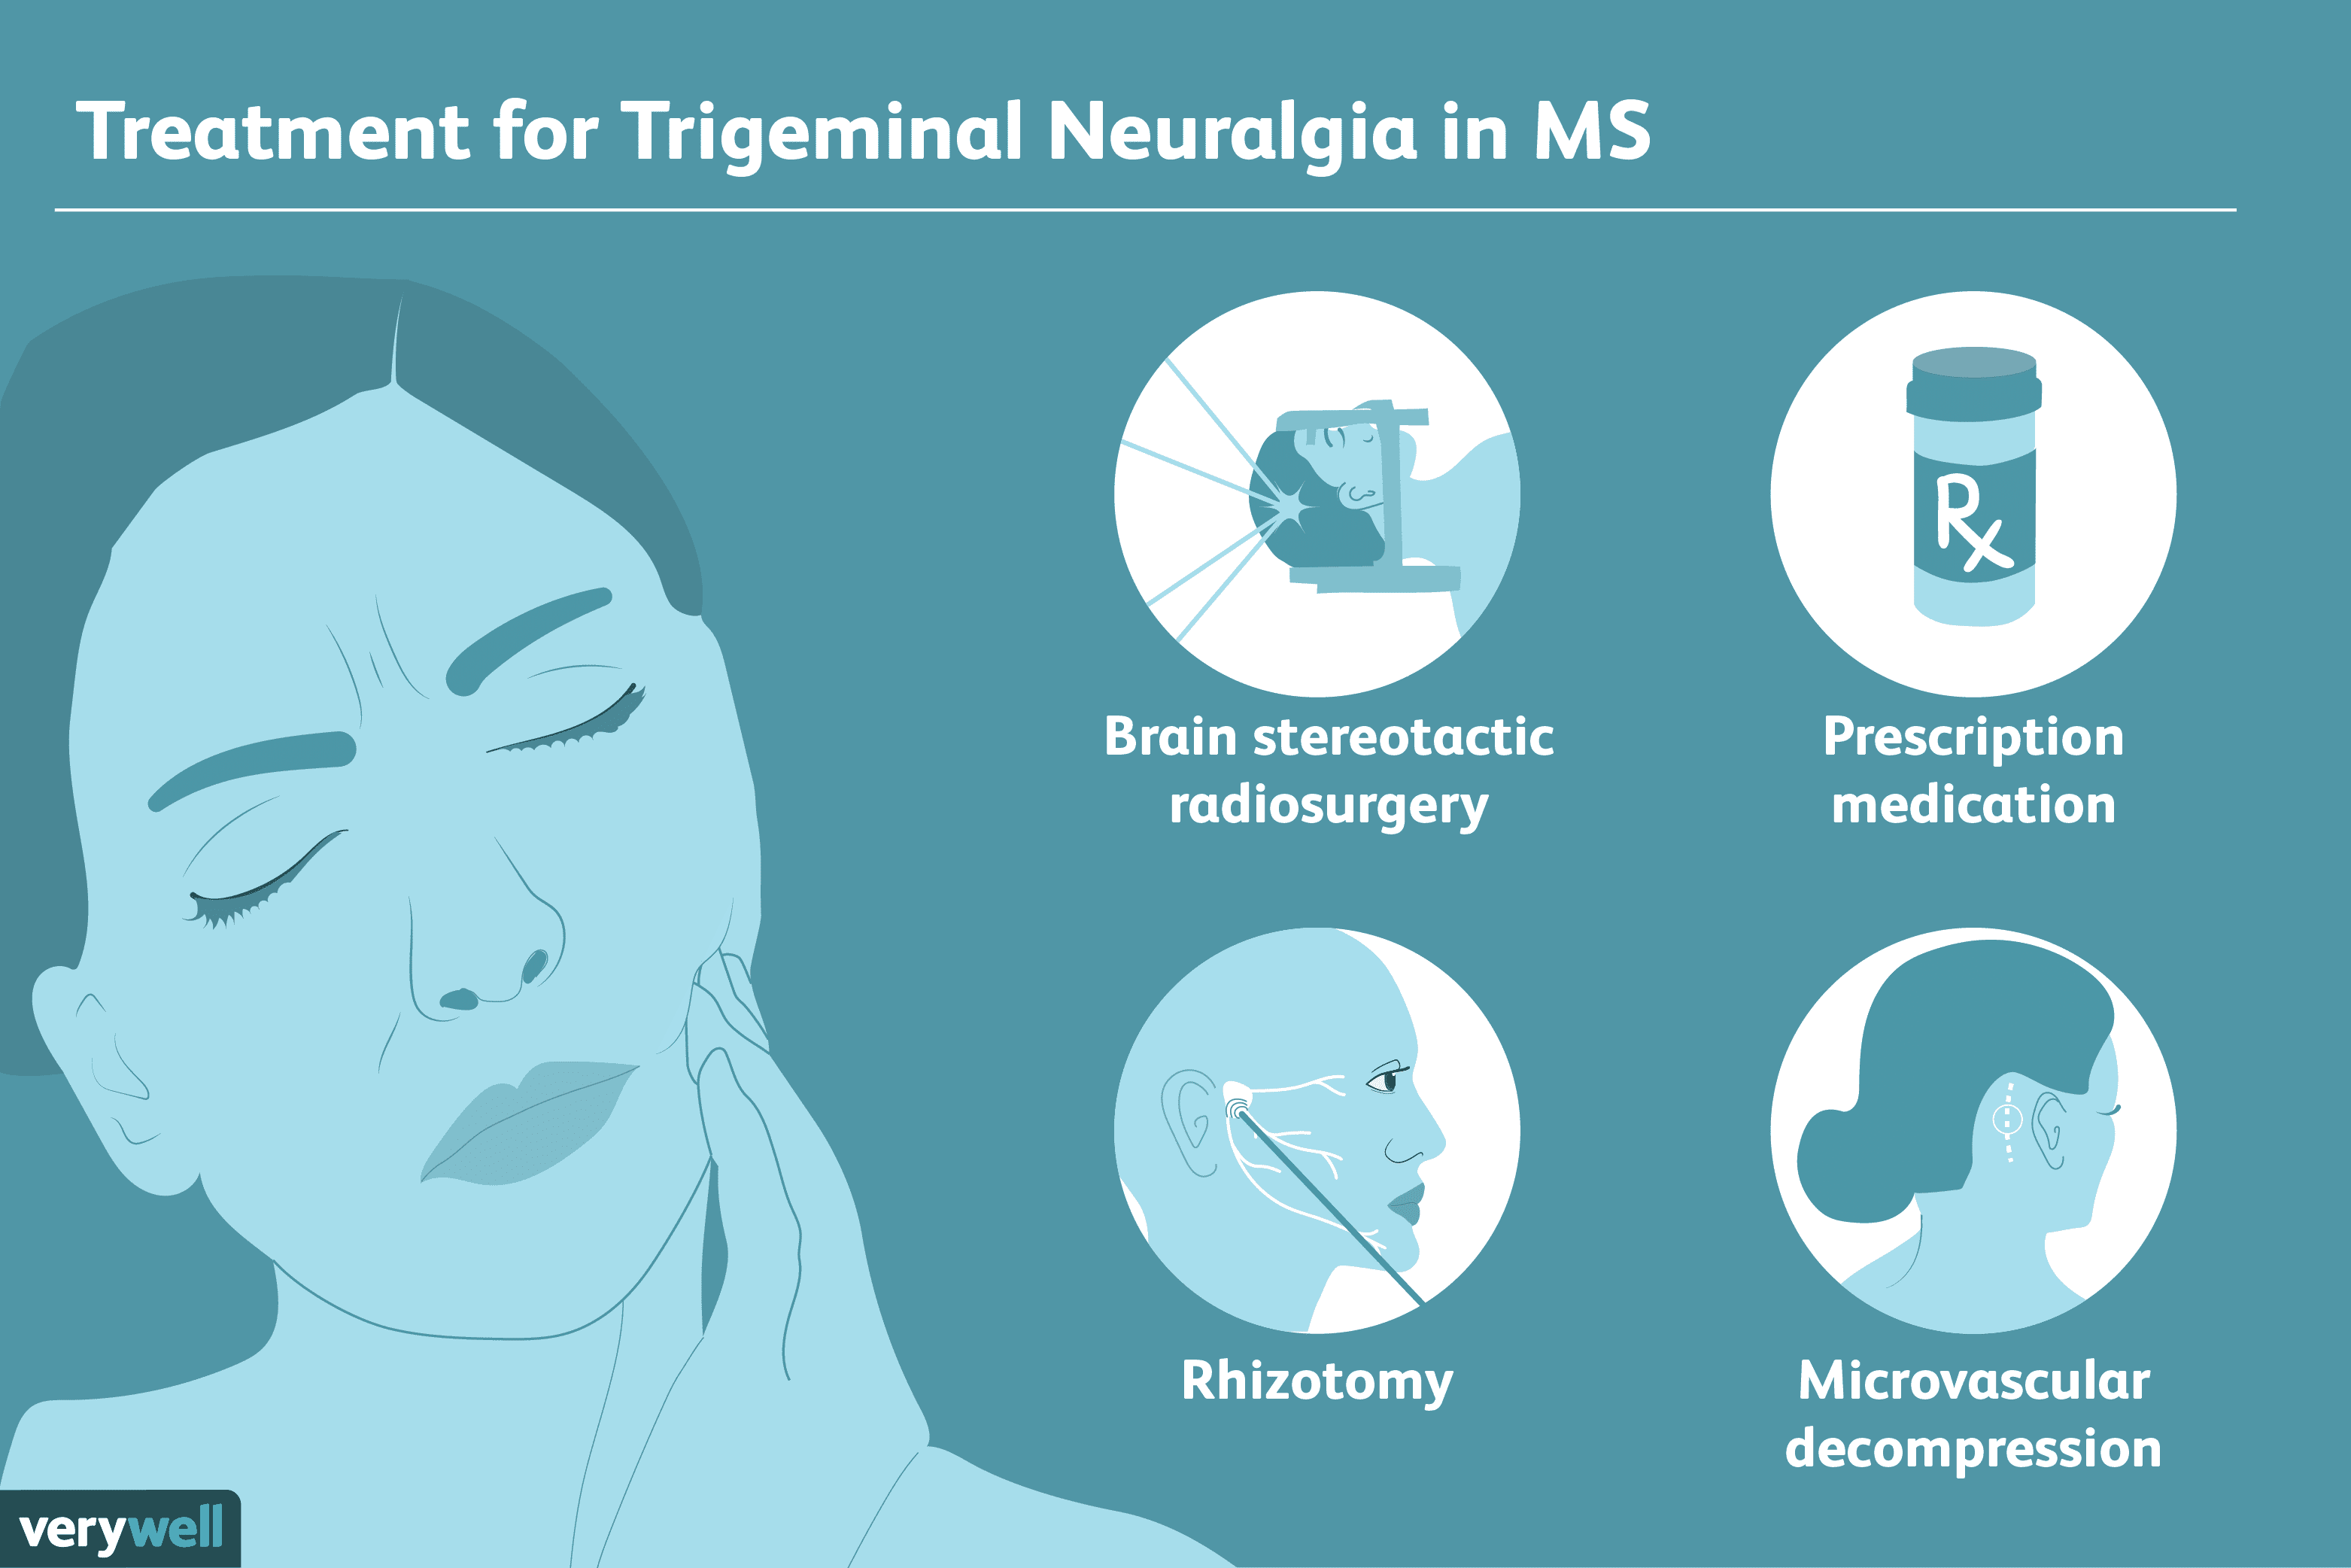 Trigeminal Neuralgia in MS: Symptoms, Diagnosis, Treatment